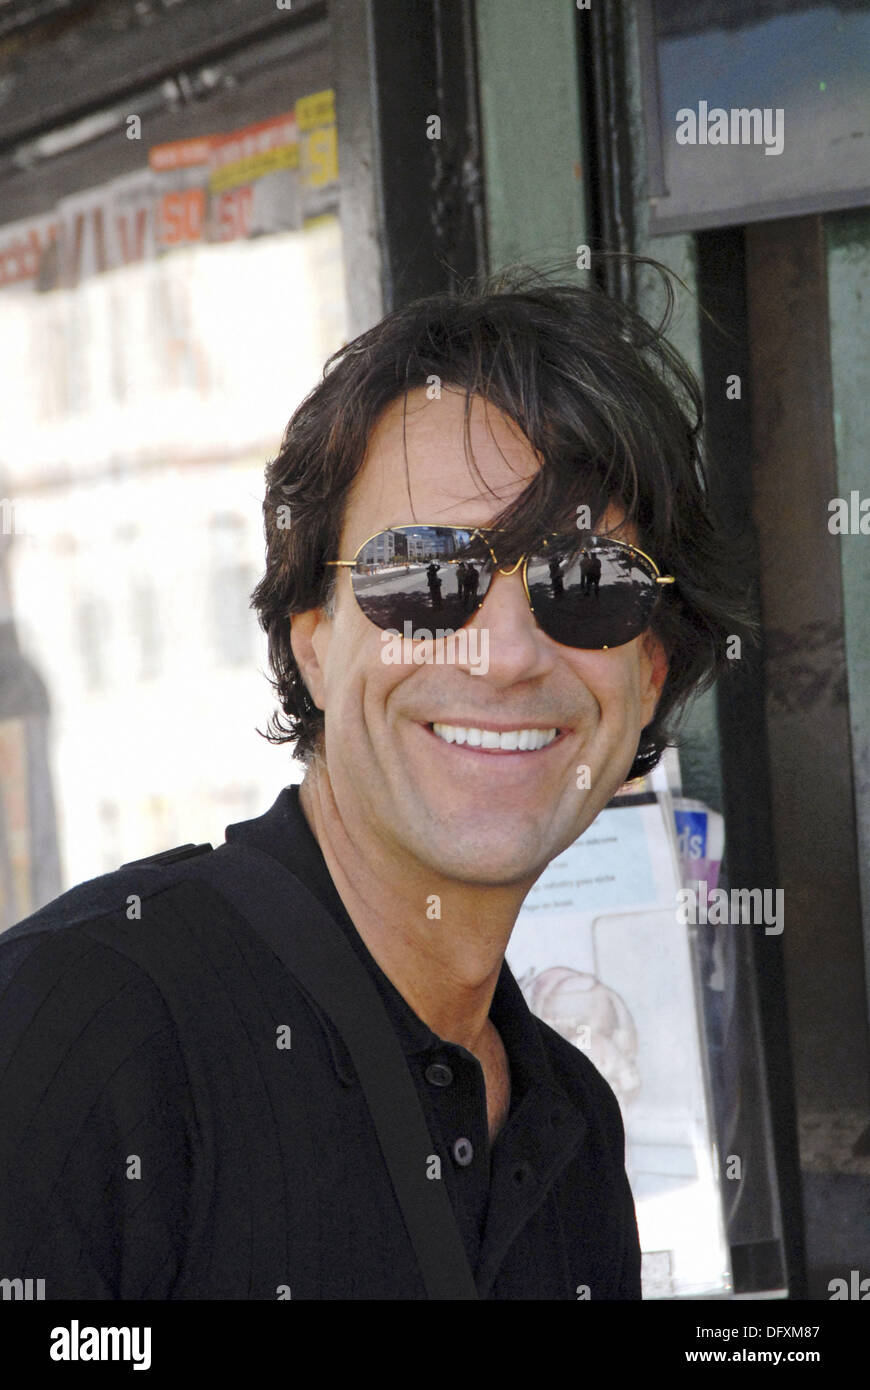 40-45 year old caucasian male, wearing sunglasses, close-up at an outdoor news stand. - Stock Image